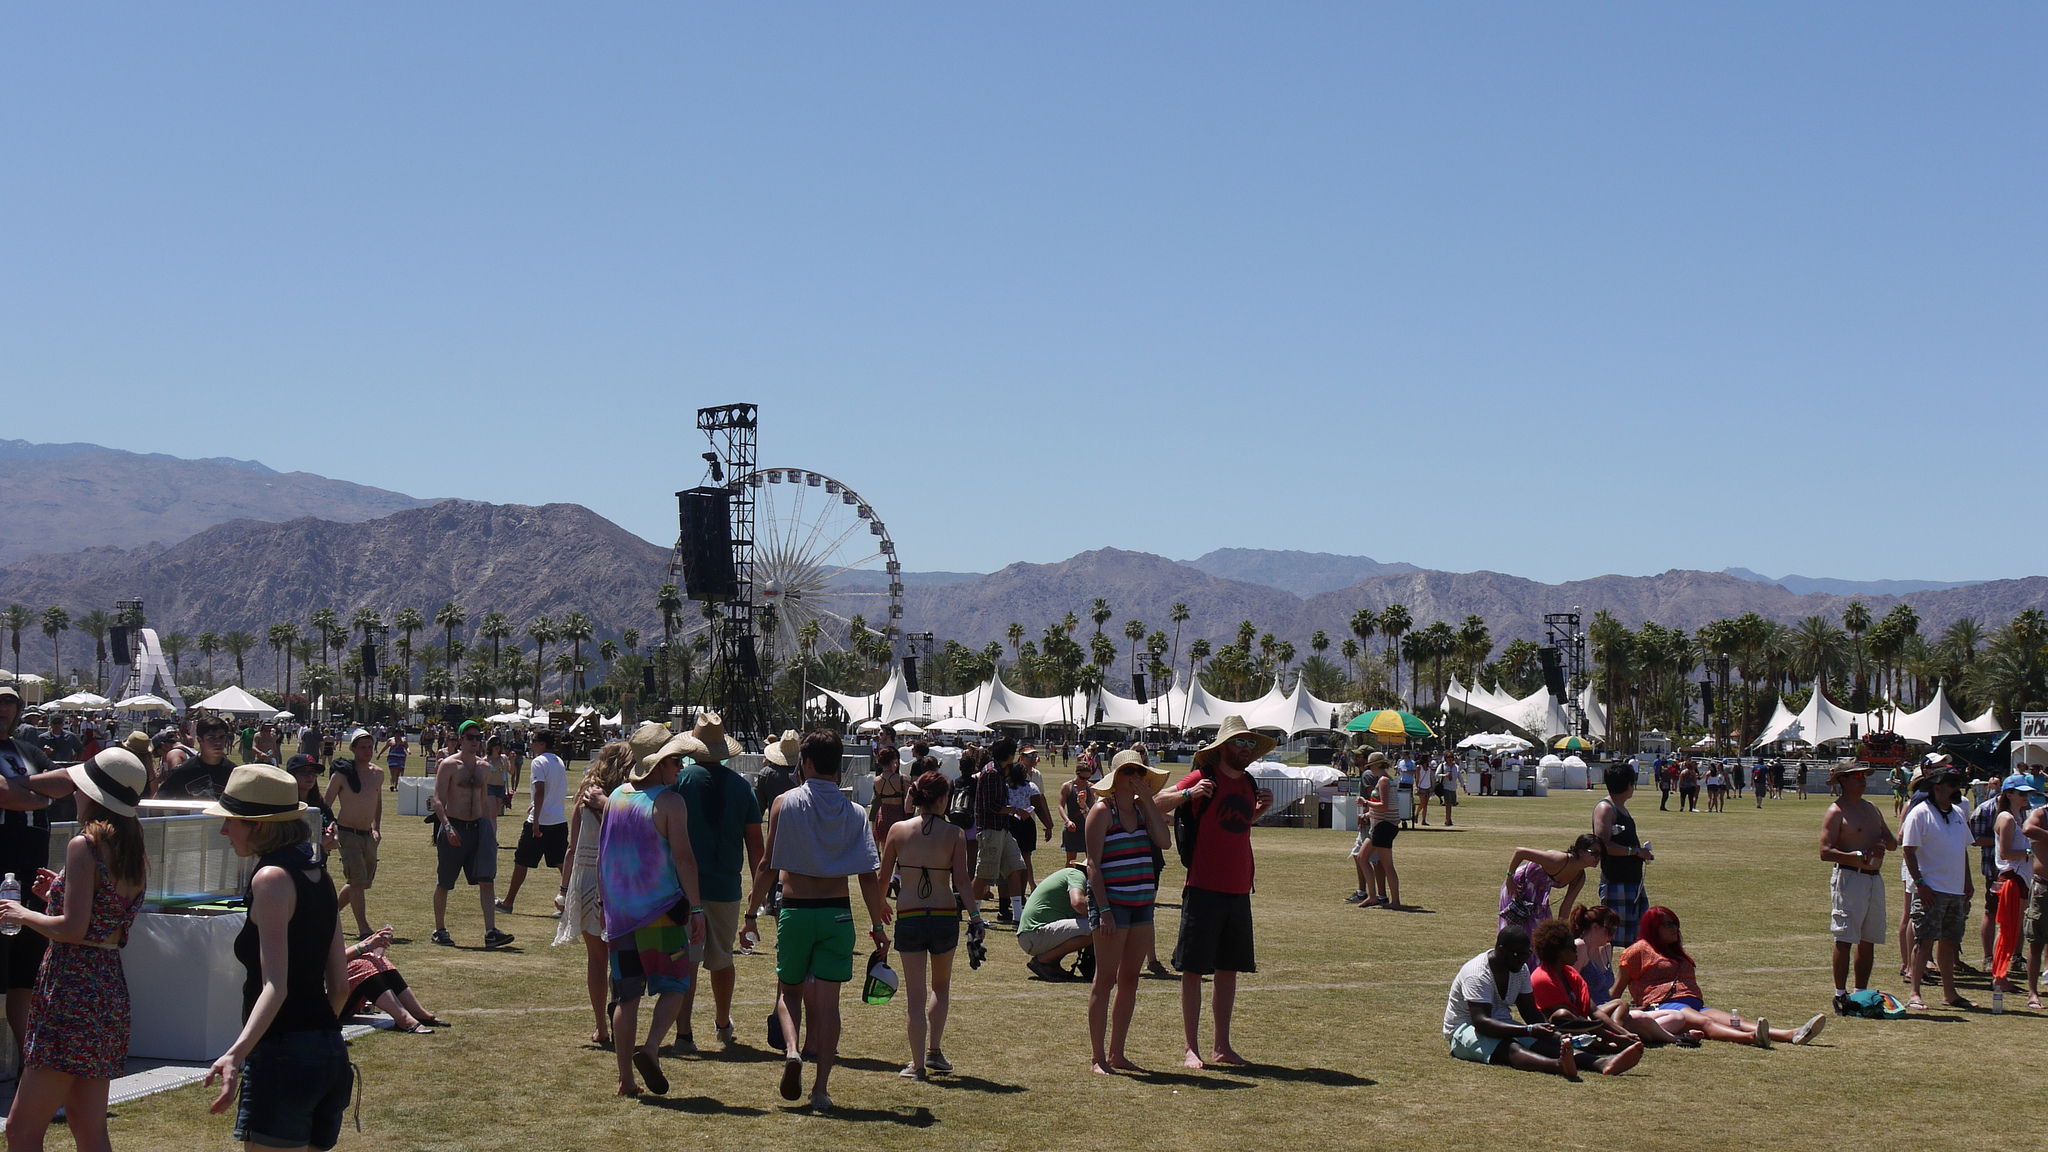 Coachella Valley Music and Arts Festival | © Malcolm Murdoch/Flickr